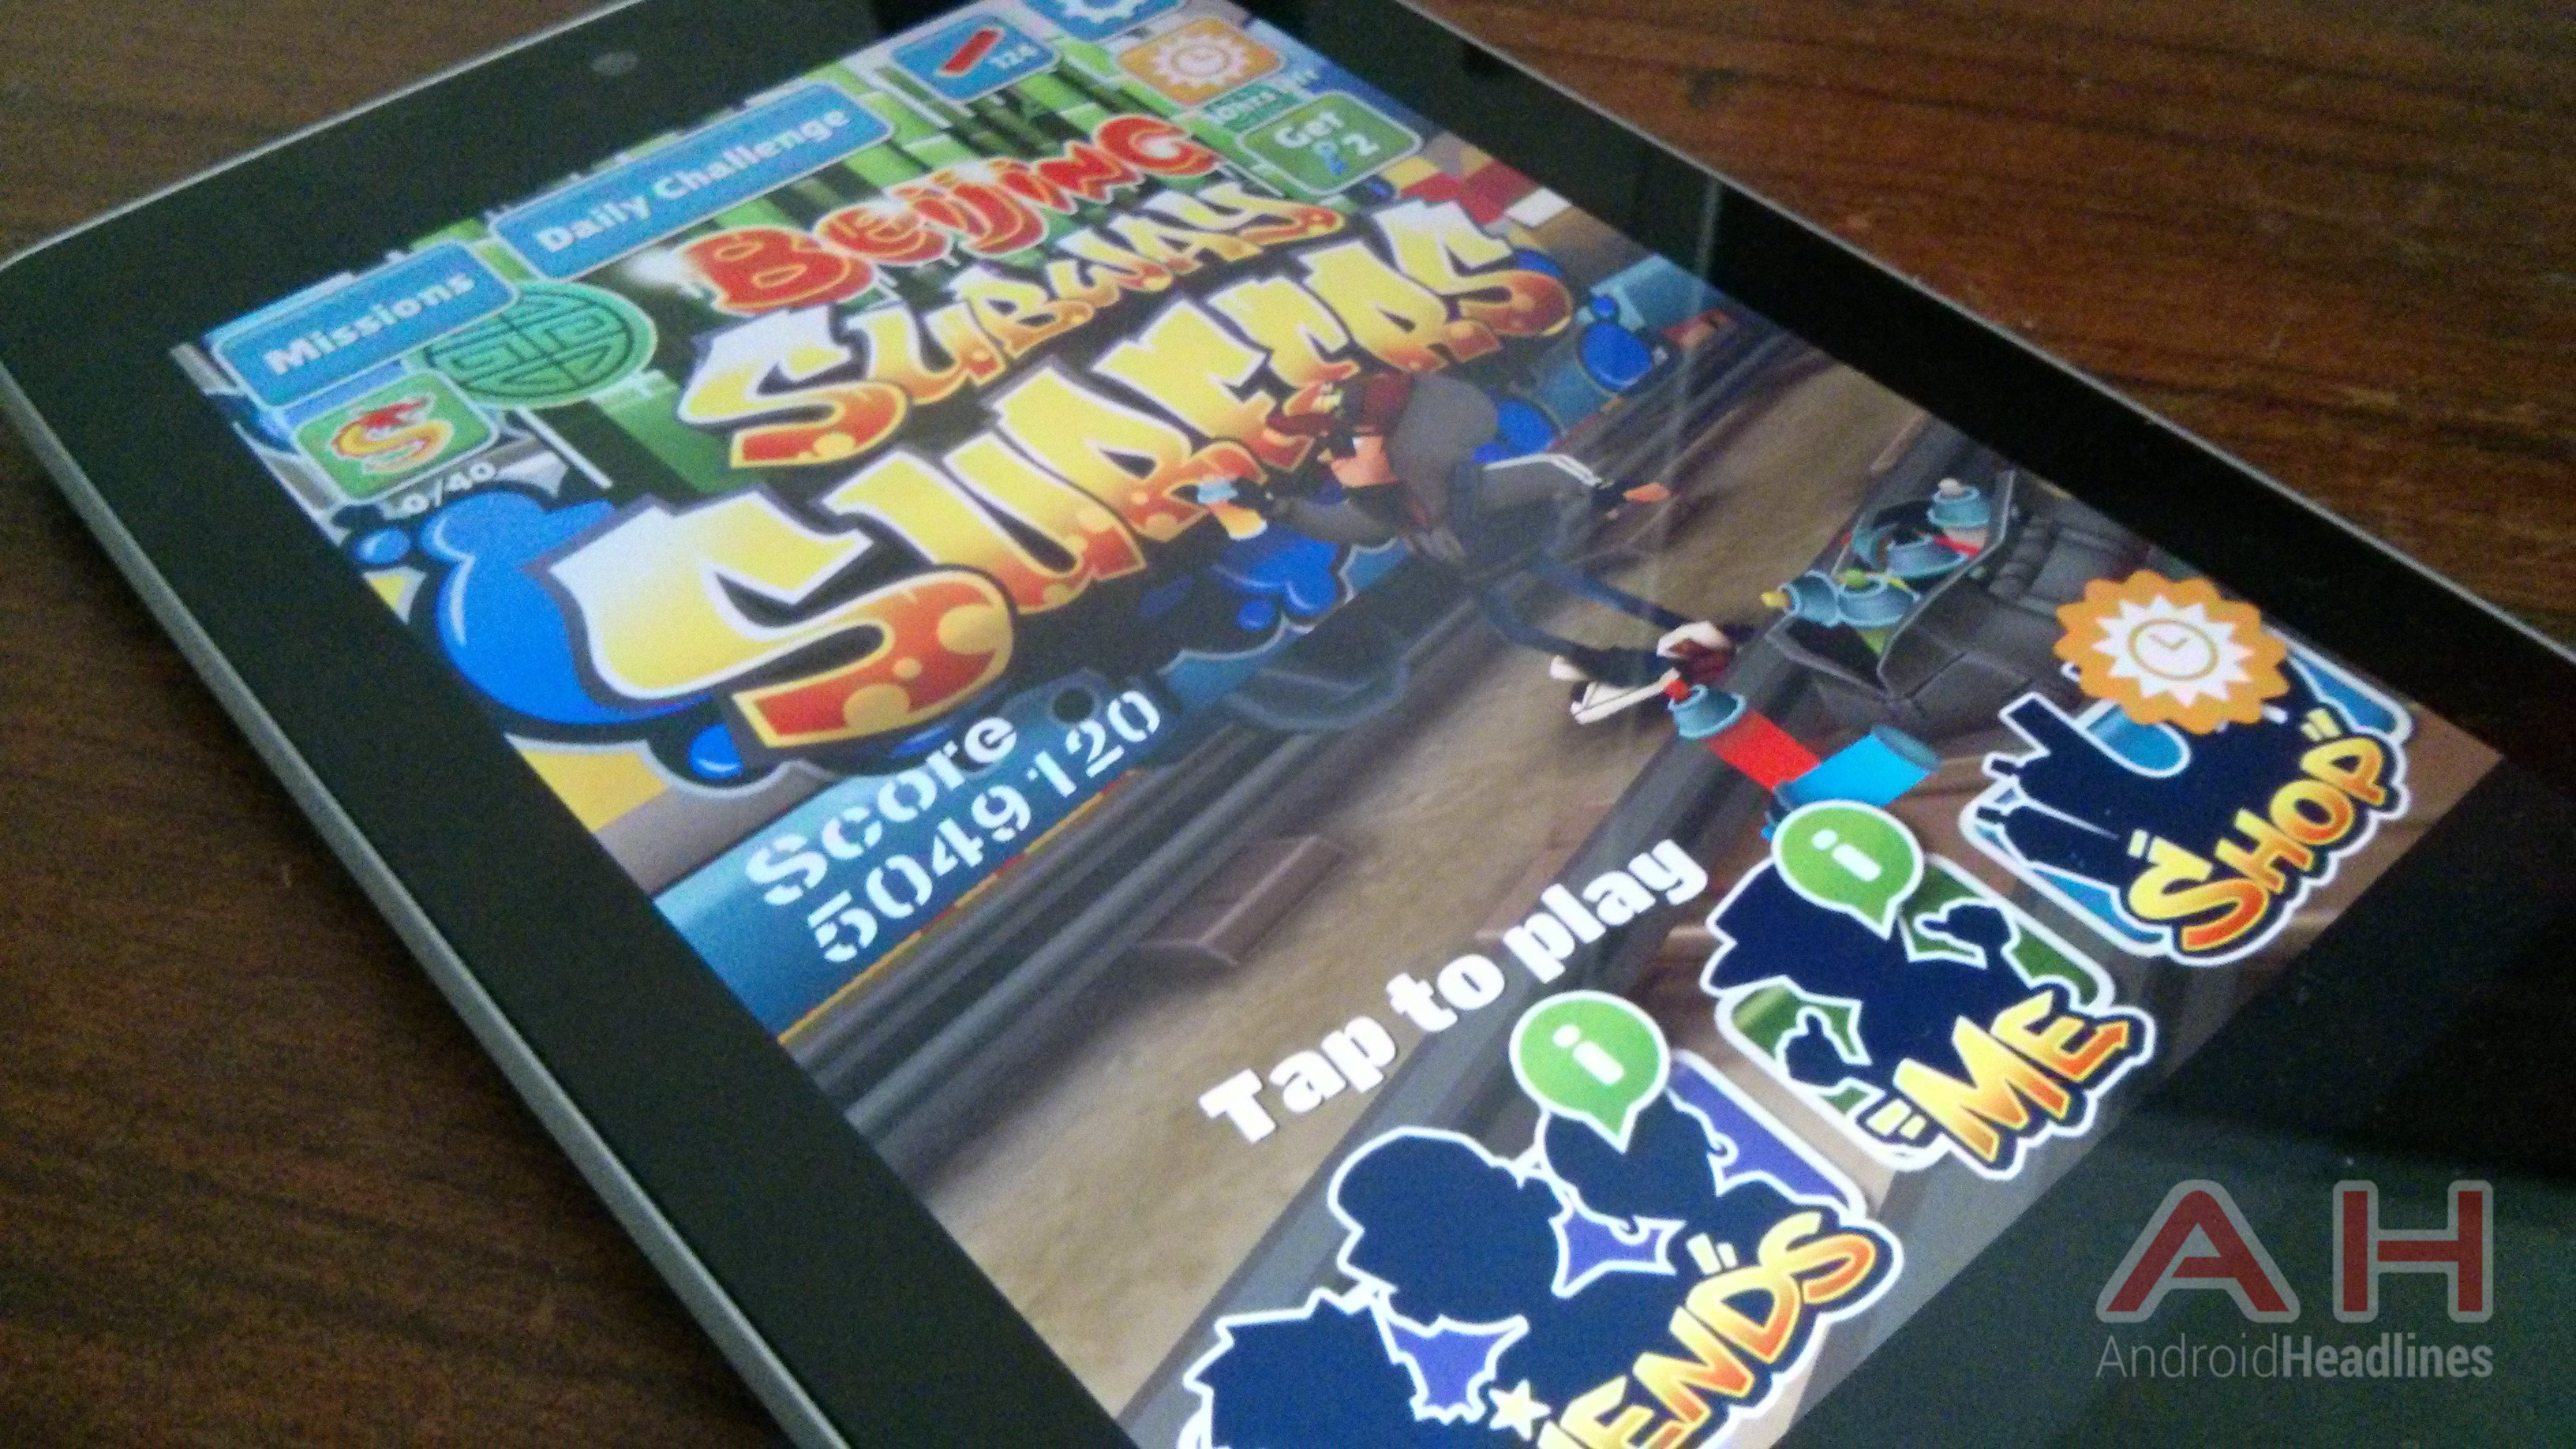 Top 10 Android Games For Kids